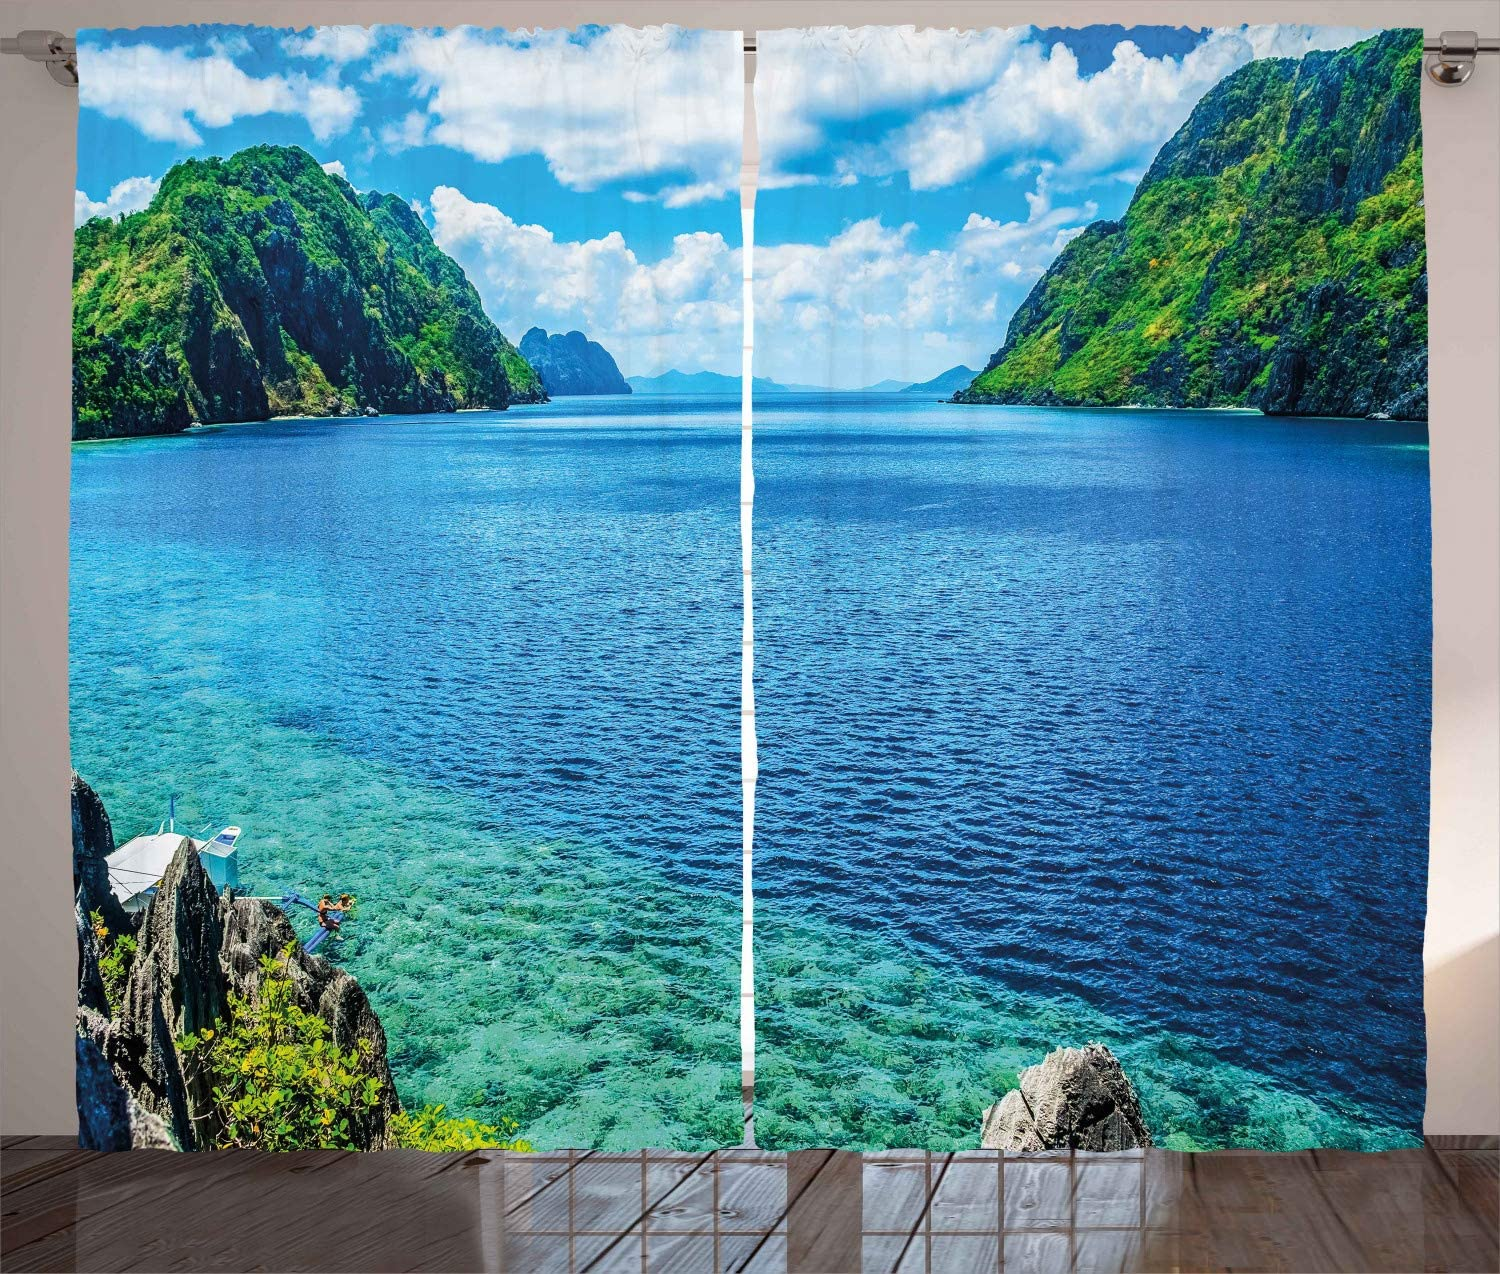 Ambesonne Nature Curtains, Scenic View Sea Bay and Mountain Islands in Palawan Philippines Idyllic Image, Living Room Bedroom Window Drapes 2 Panel Set, 108